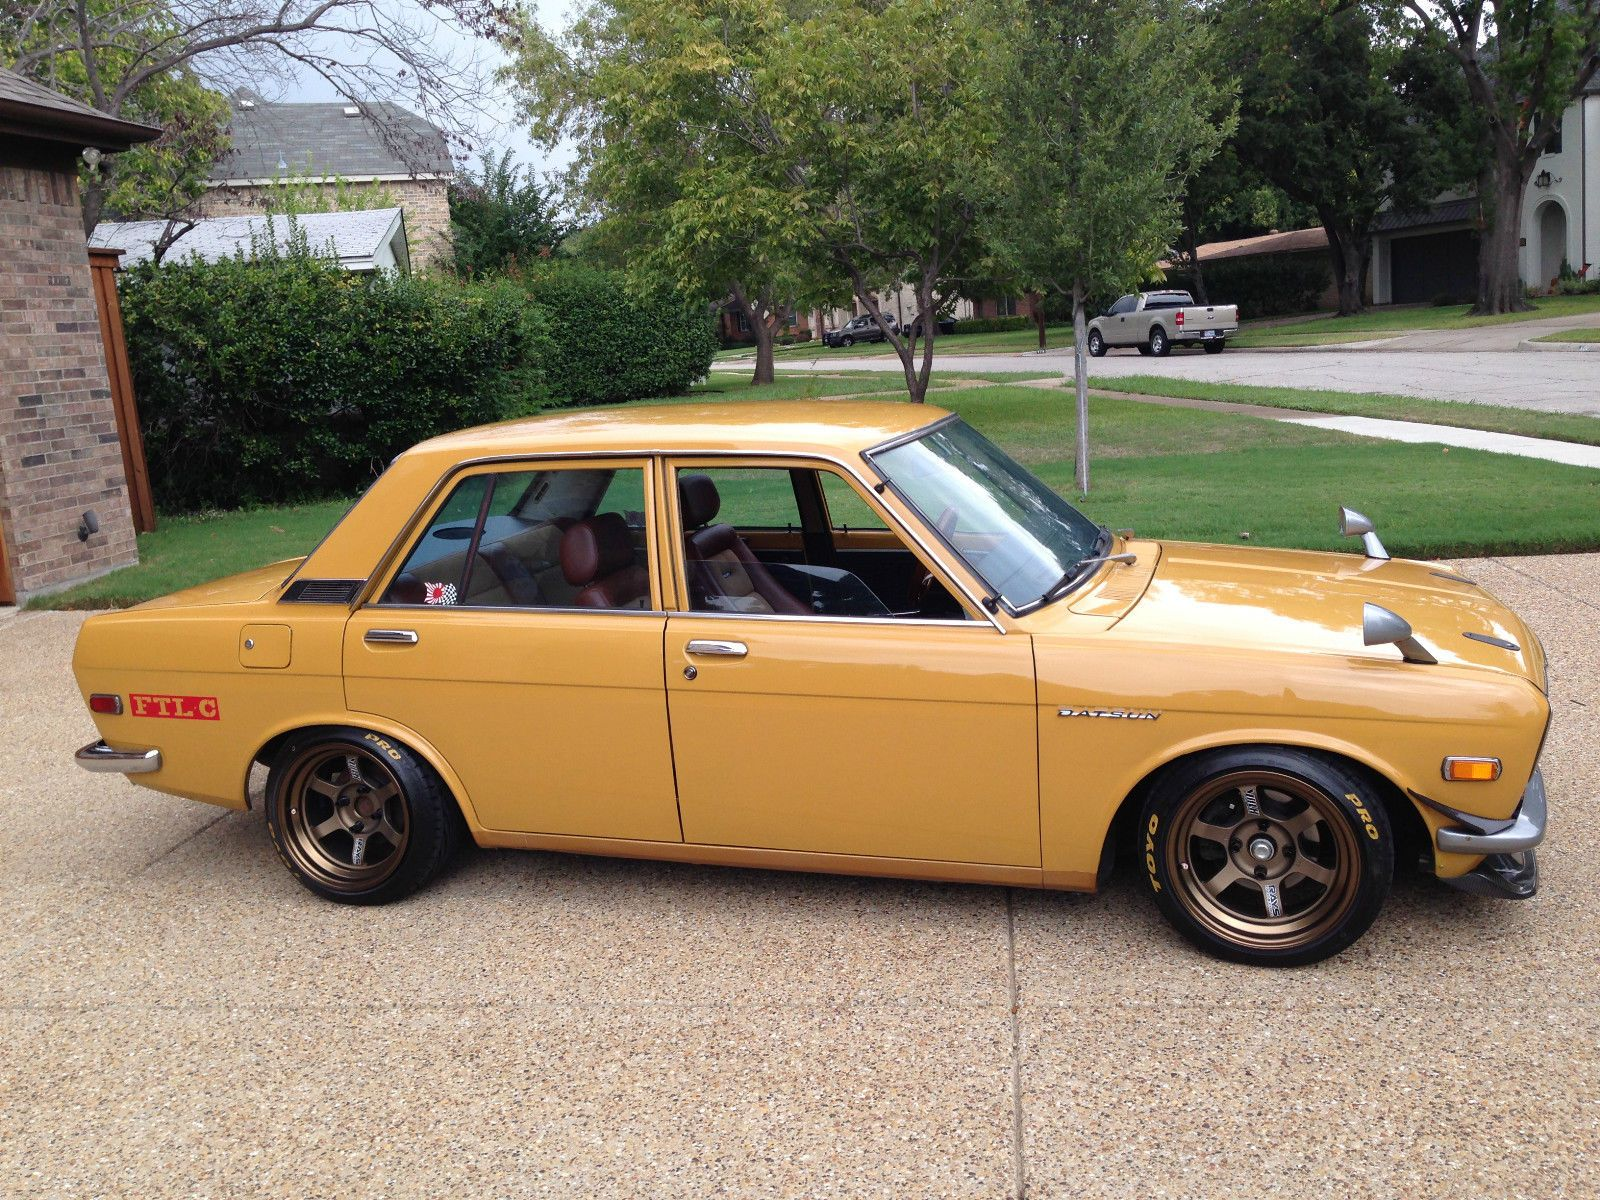 Magazine worthy Datsun 510 - Rare Cars for Sale BlogRare